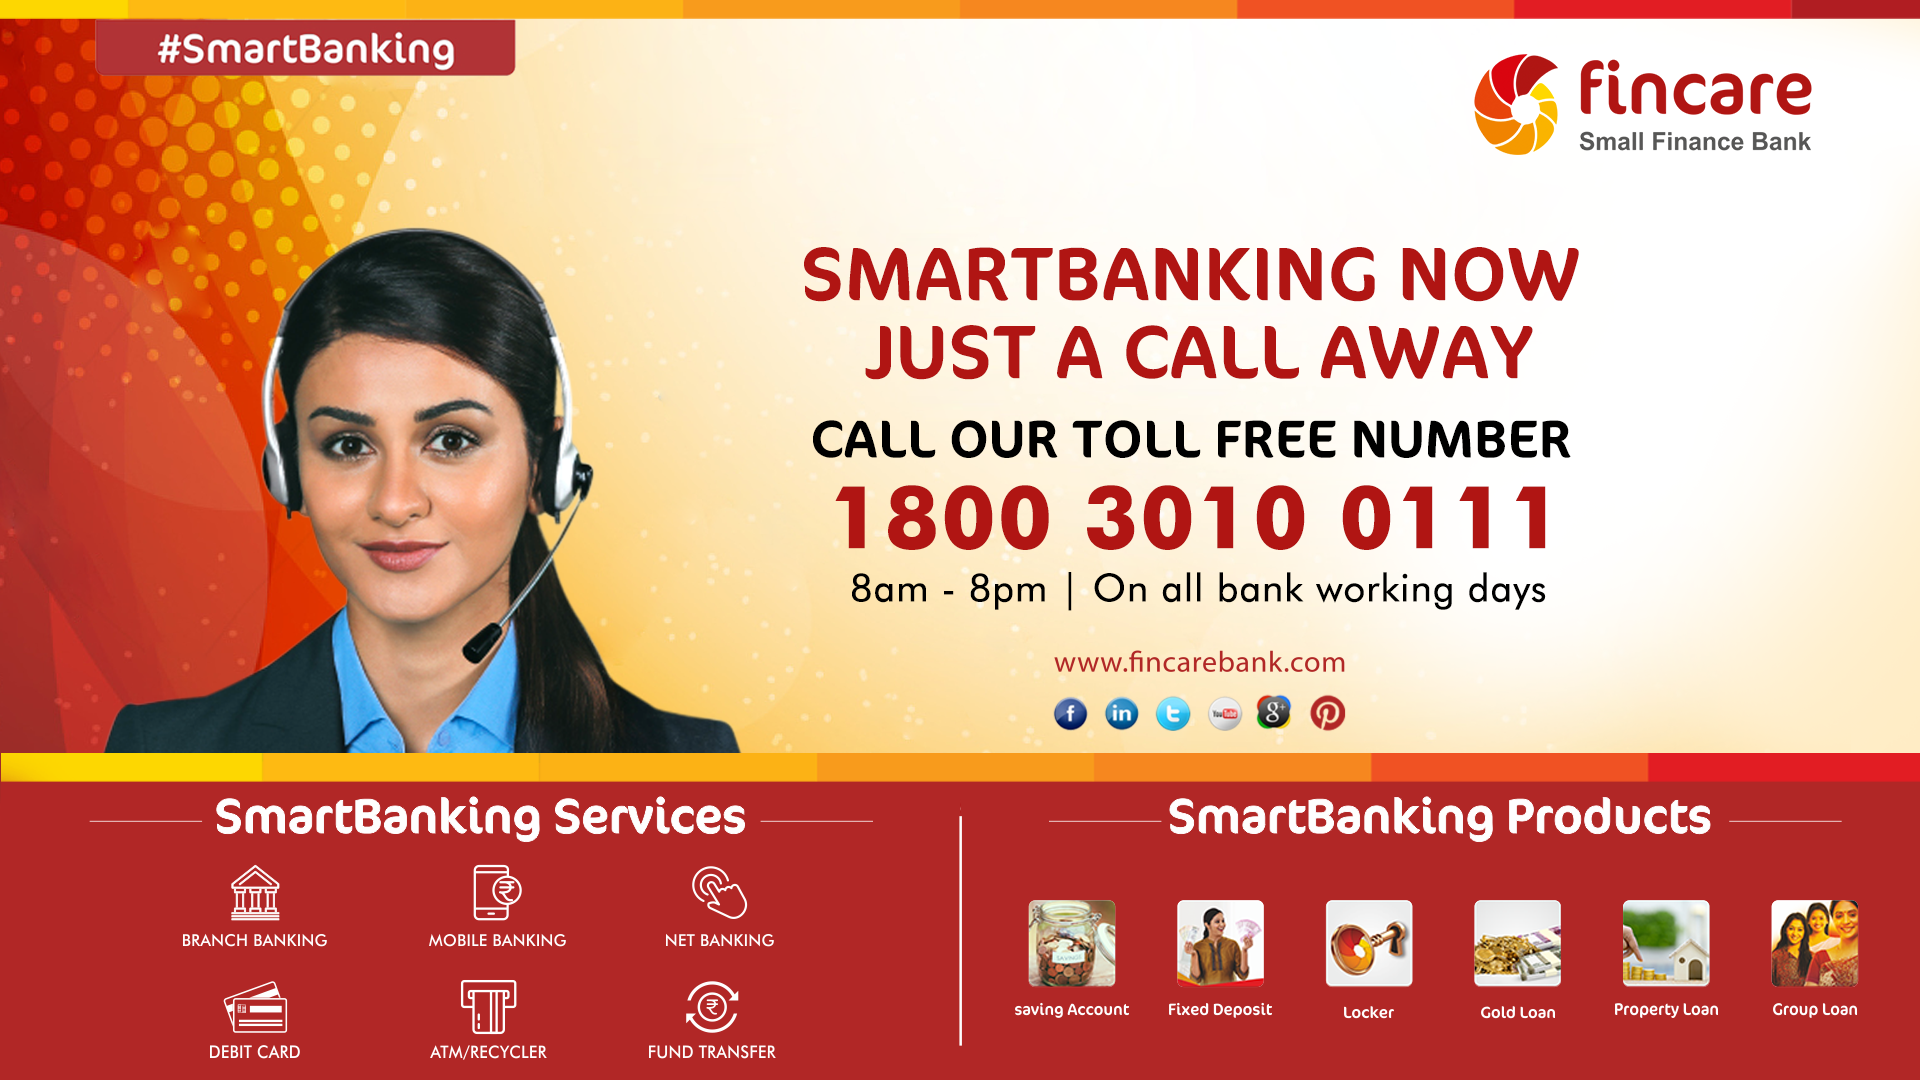 Smartbanking Just A Call Away! Call our toll free number